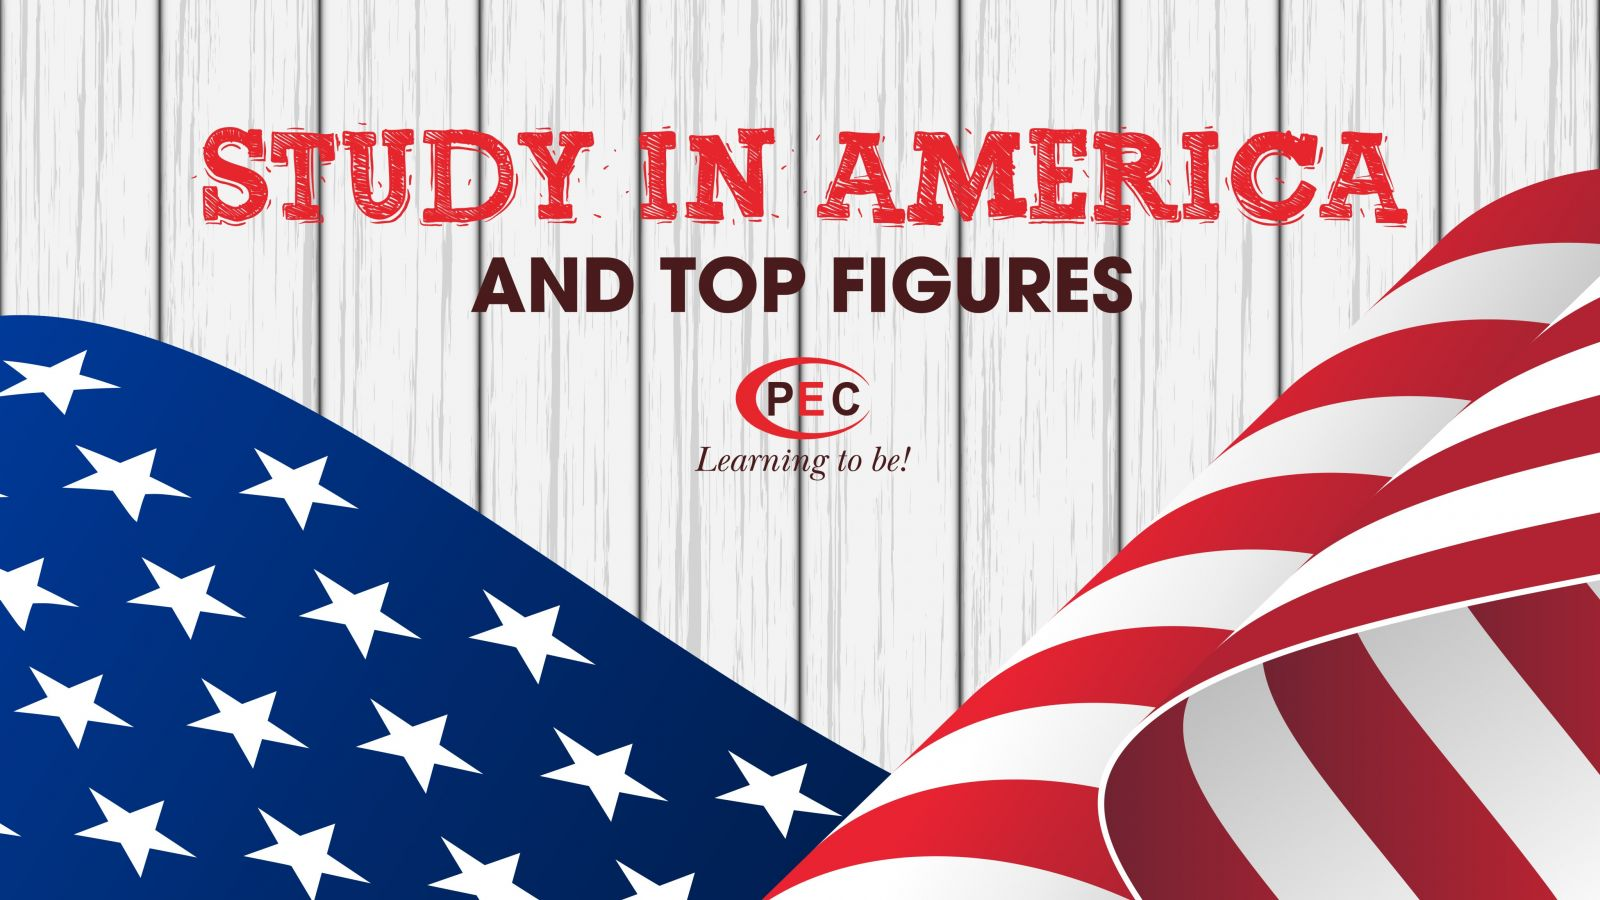 Study in America and top figures